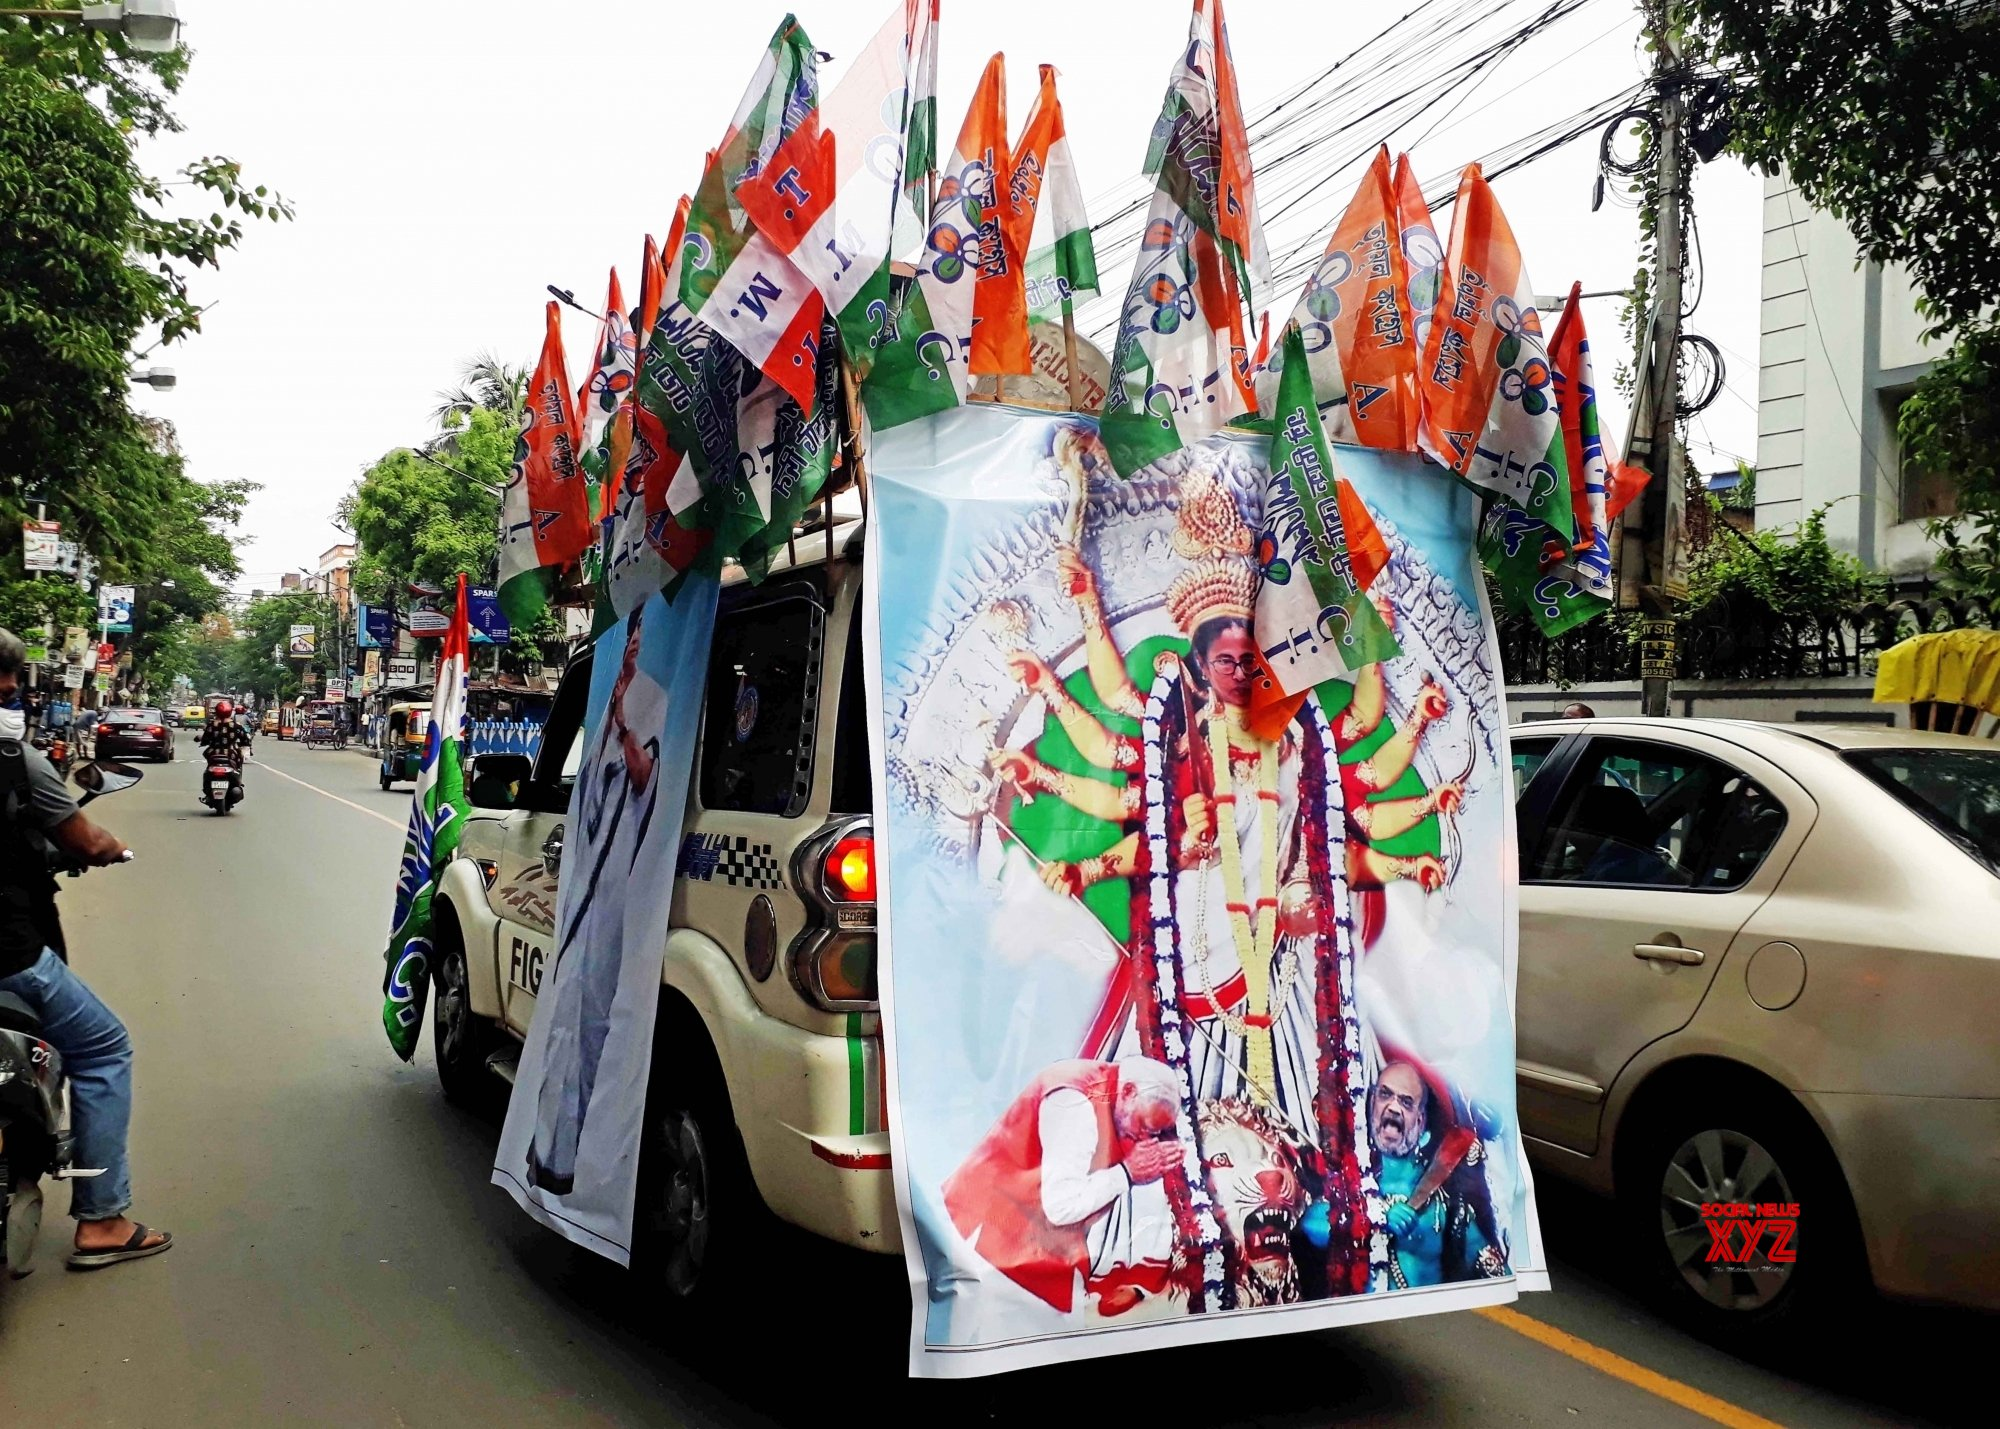 Kolkata : Decorated car with a TMC flag and picture of TMC supremo Mamata Banerjee is rotating over the roads of Kolkata for celebrating their State Assembly election victory in Kolkata on May 4, 2021. #Gallery